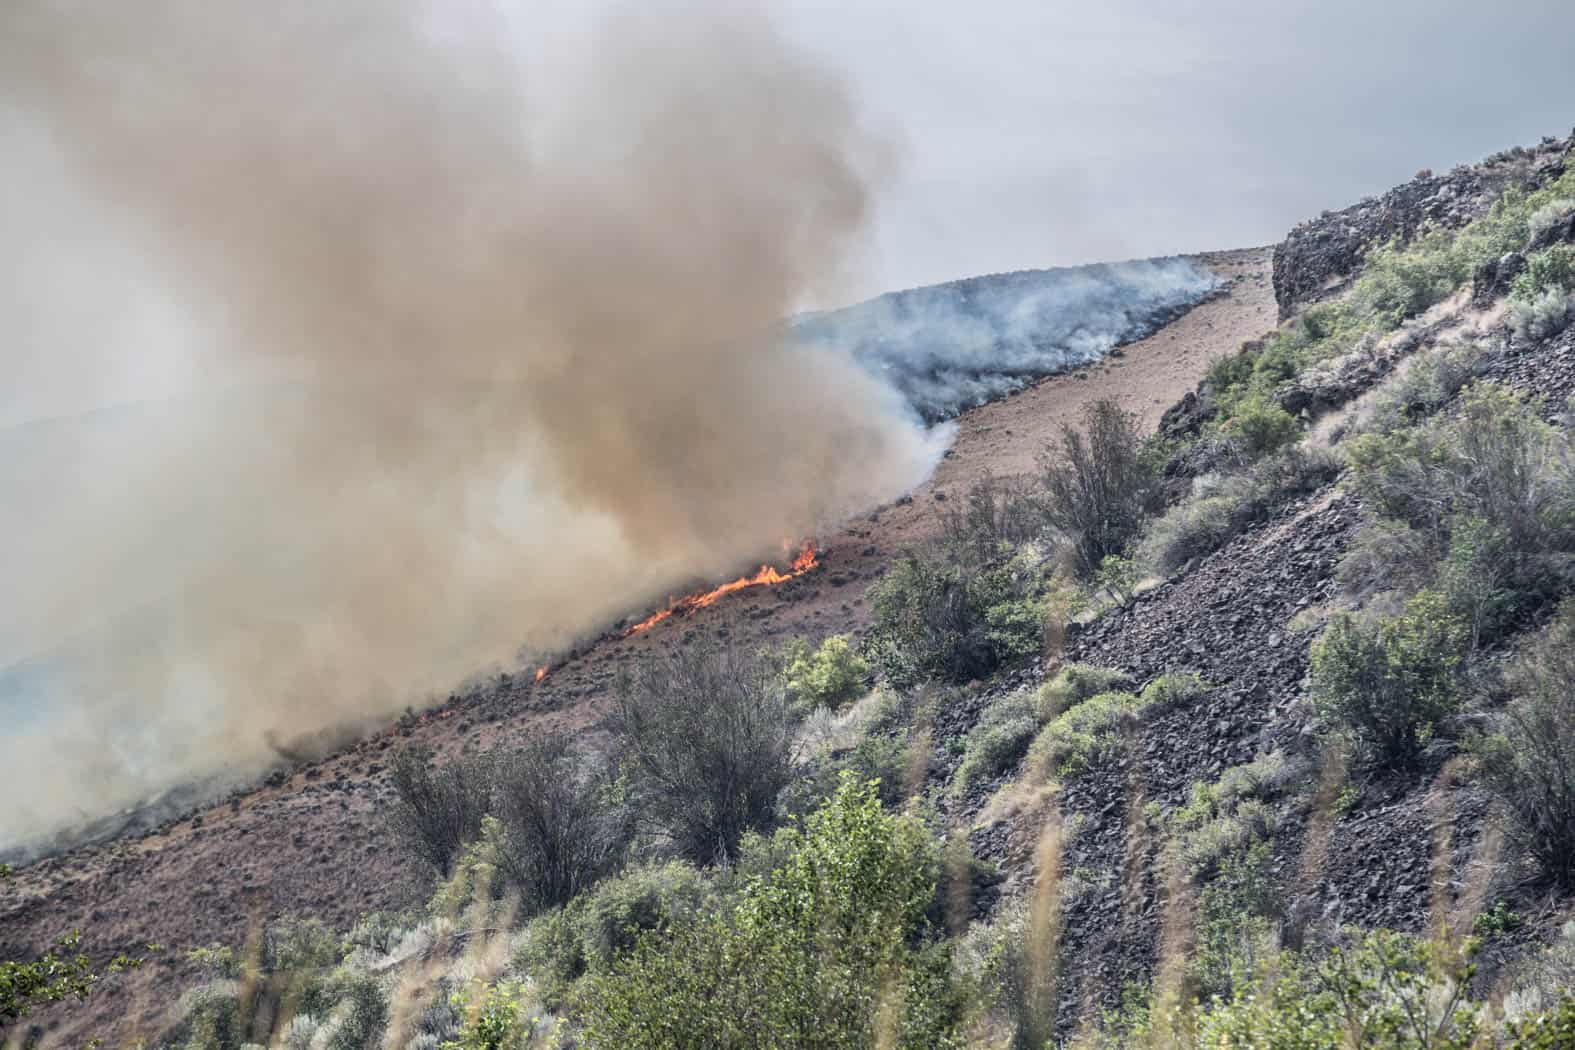 Brush fire burning in a canyon in central Washington.